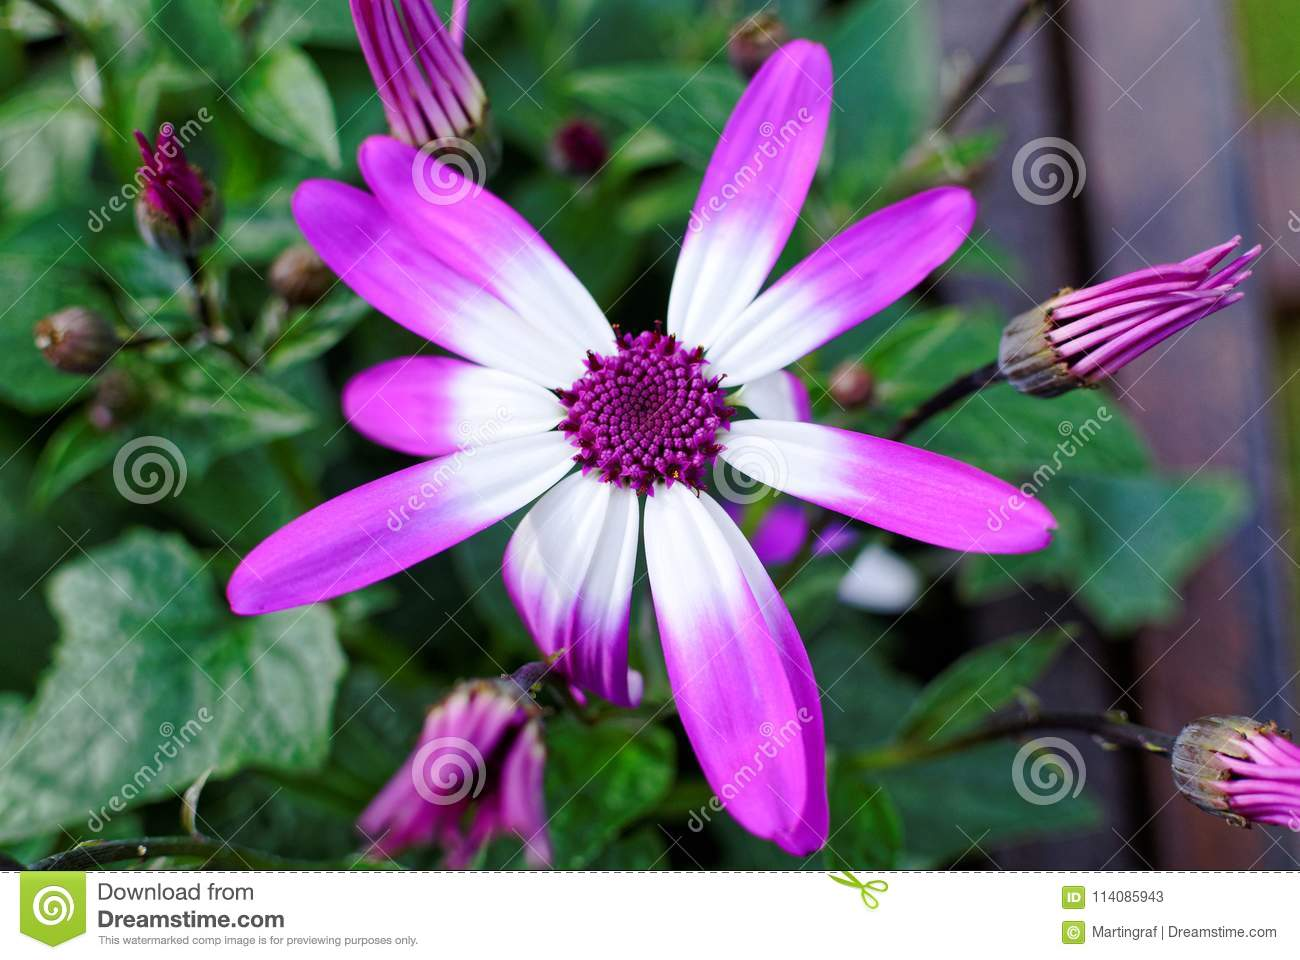 Violet and white petals of daisy spring flower stock image image violet and white petals of daisy spring flower izmirmasajfo Choice Image